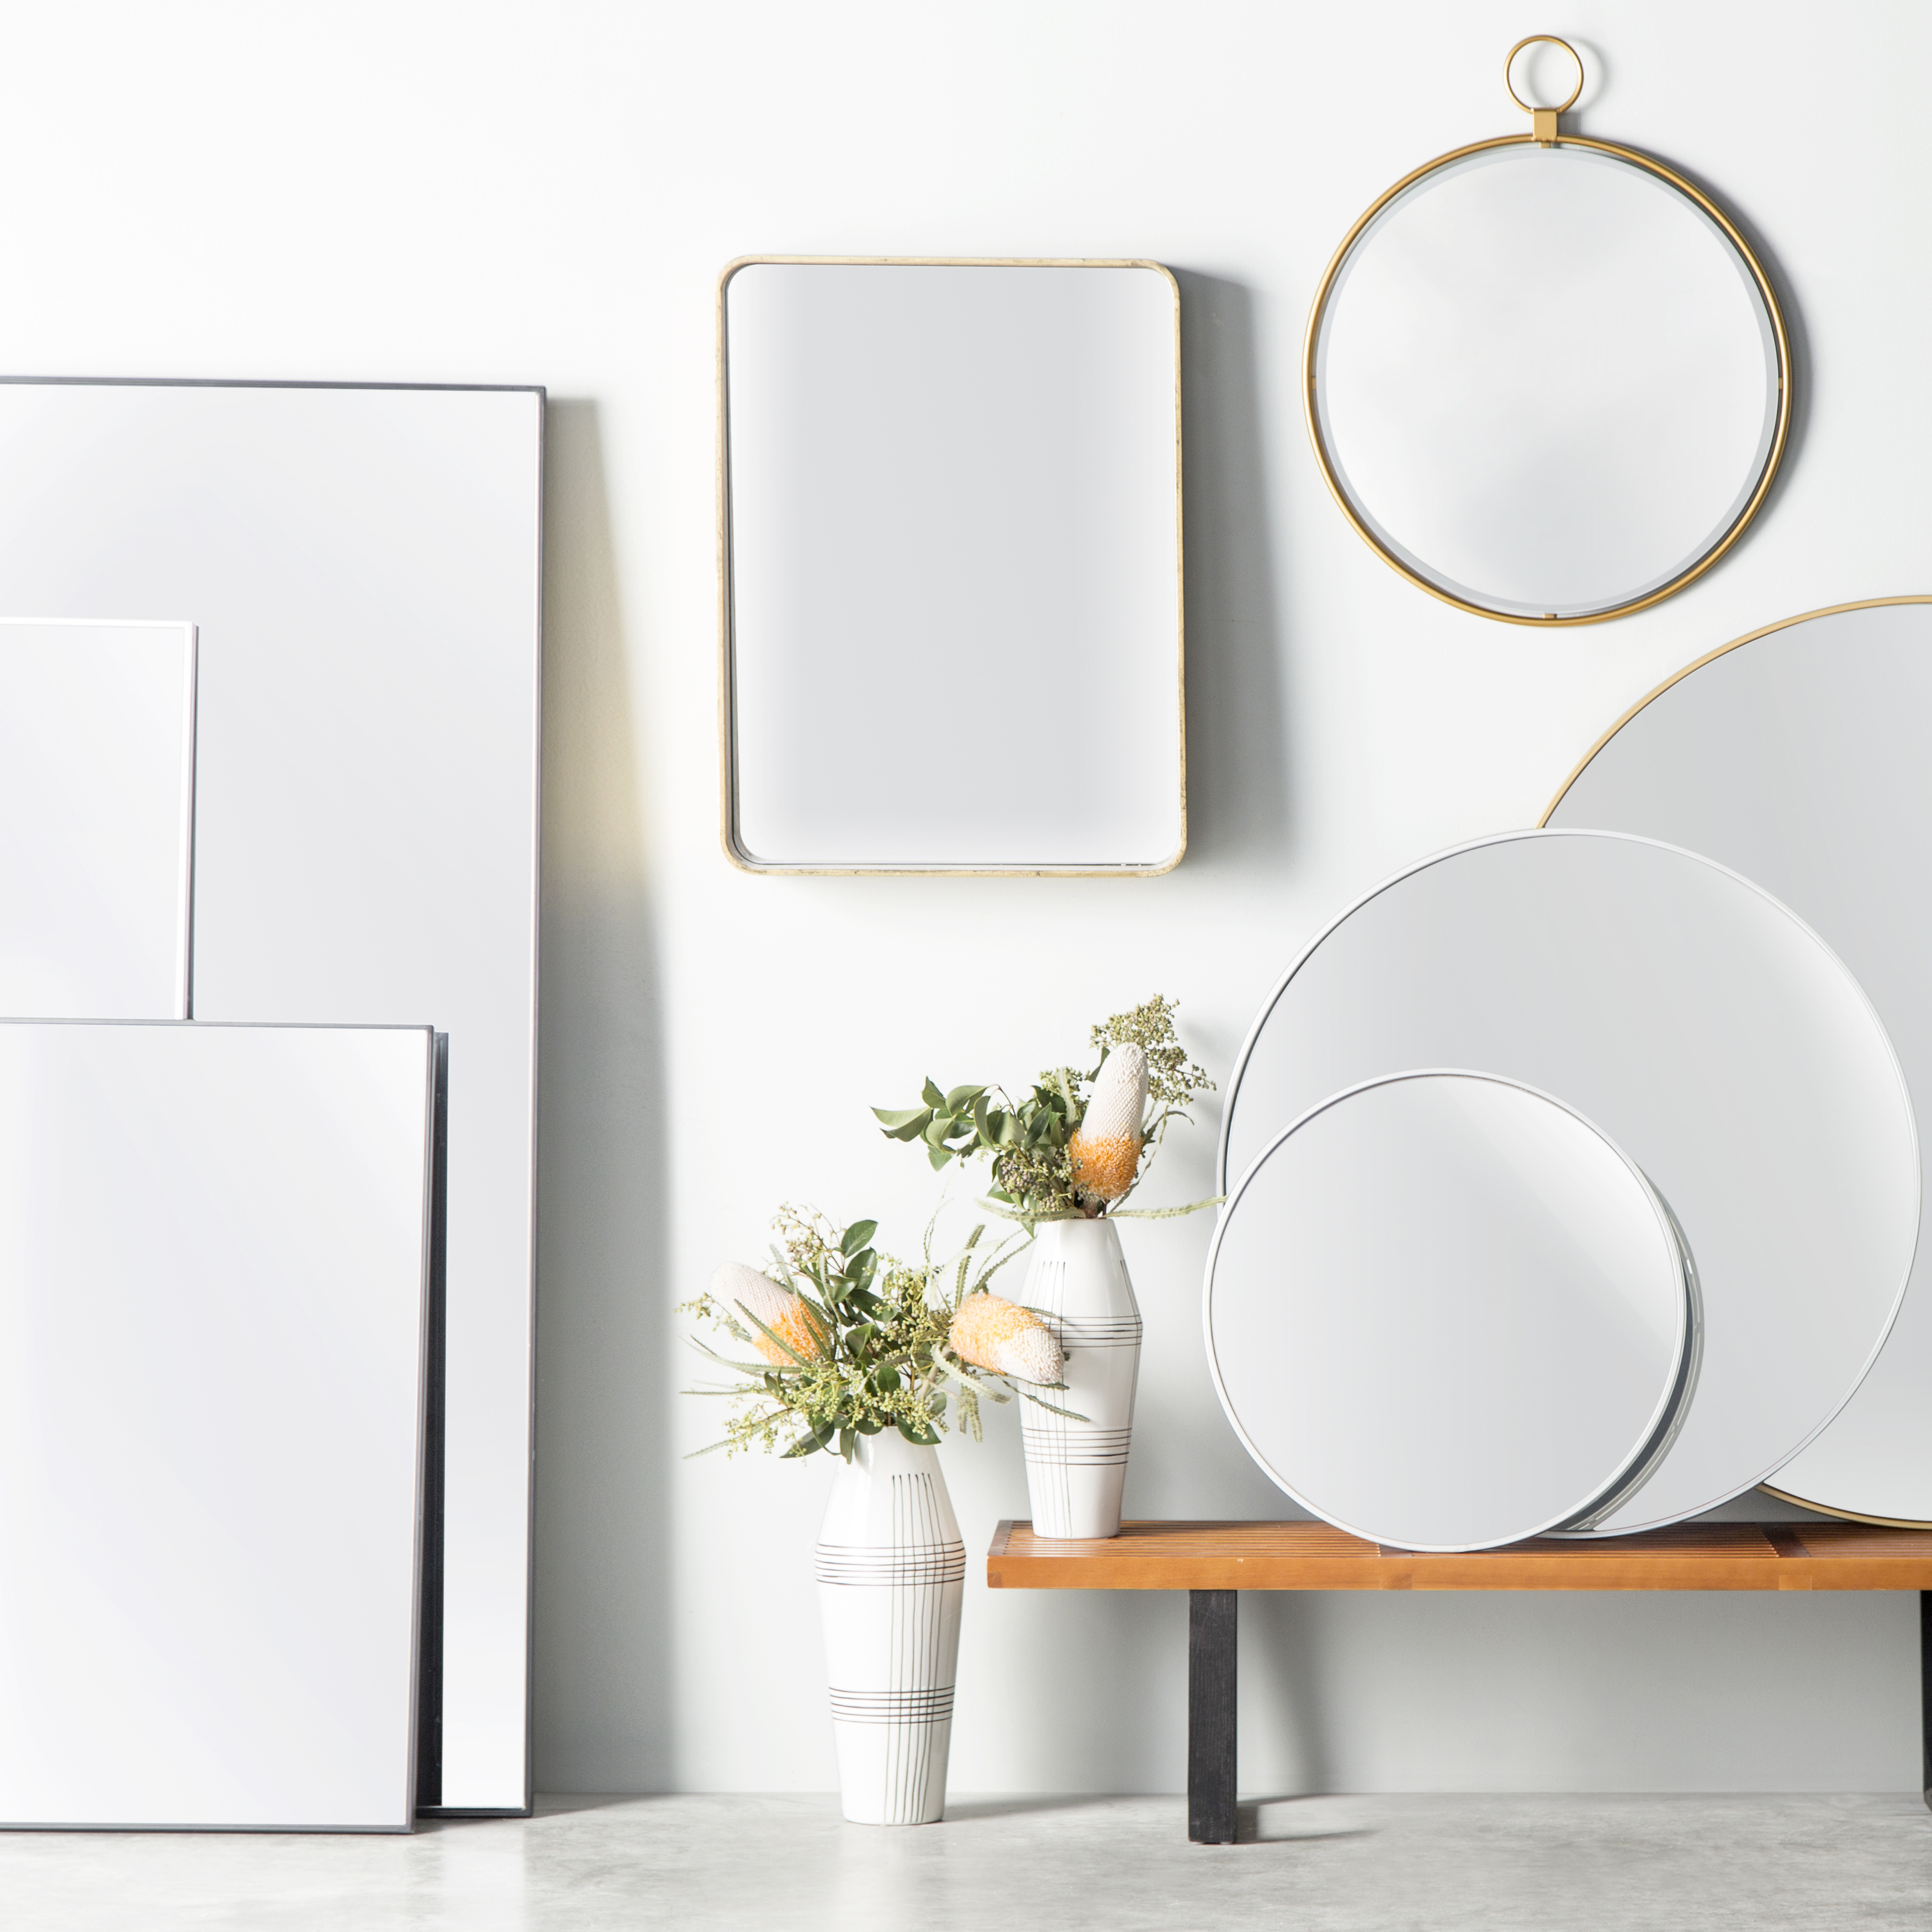 Modern Home Décor | Allmodern in 2 Piece Trigg Wall Decor Sets (Set Of 2) (Image 10 of 30)